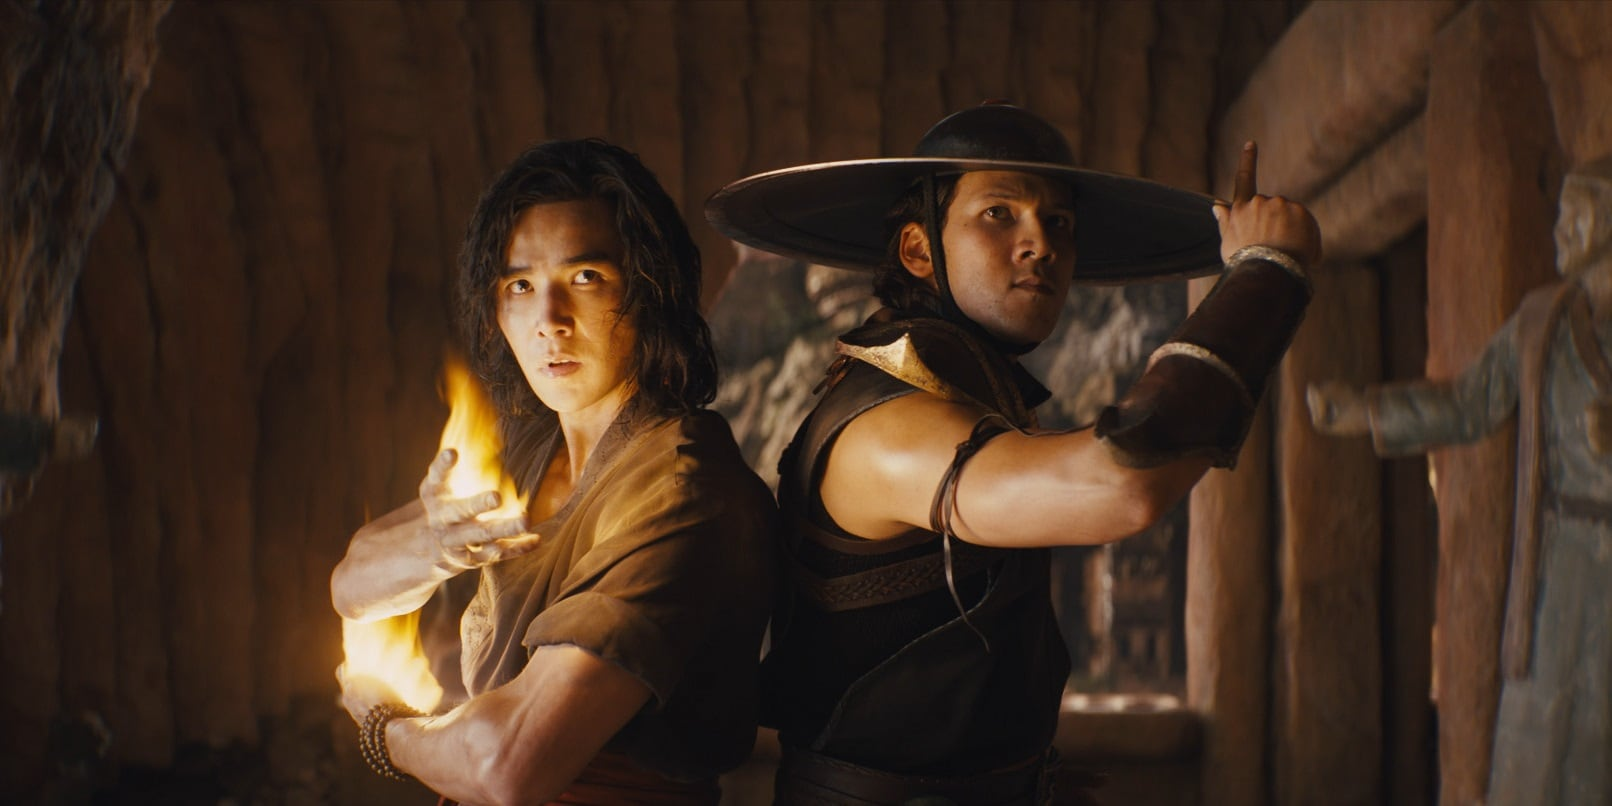 Mortal Kombat Trailer Promises a Bloody, Action Movie True to the Games